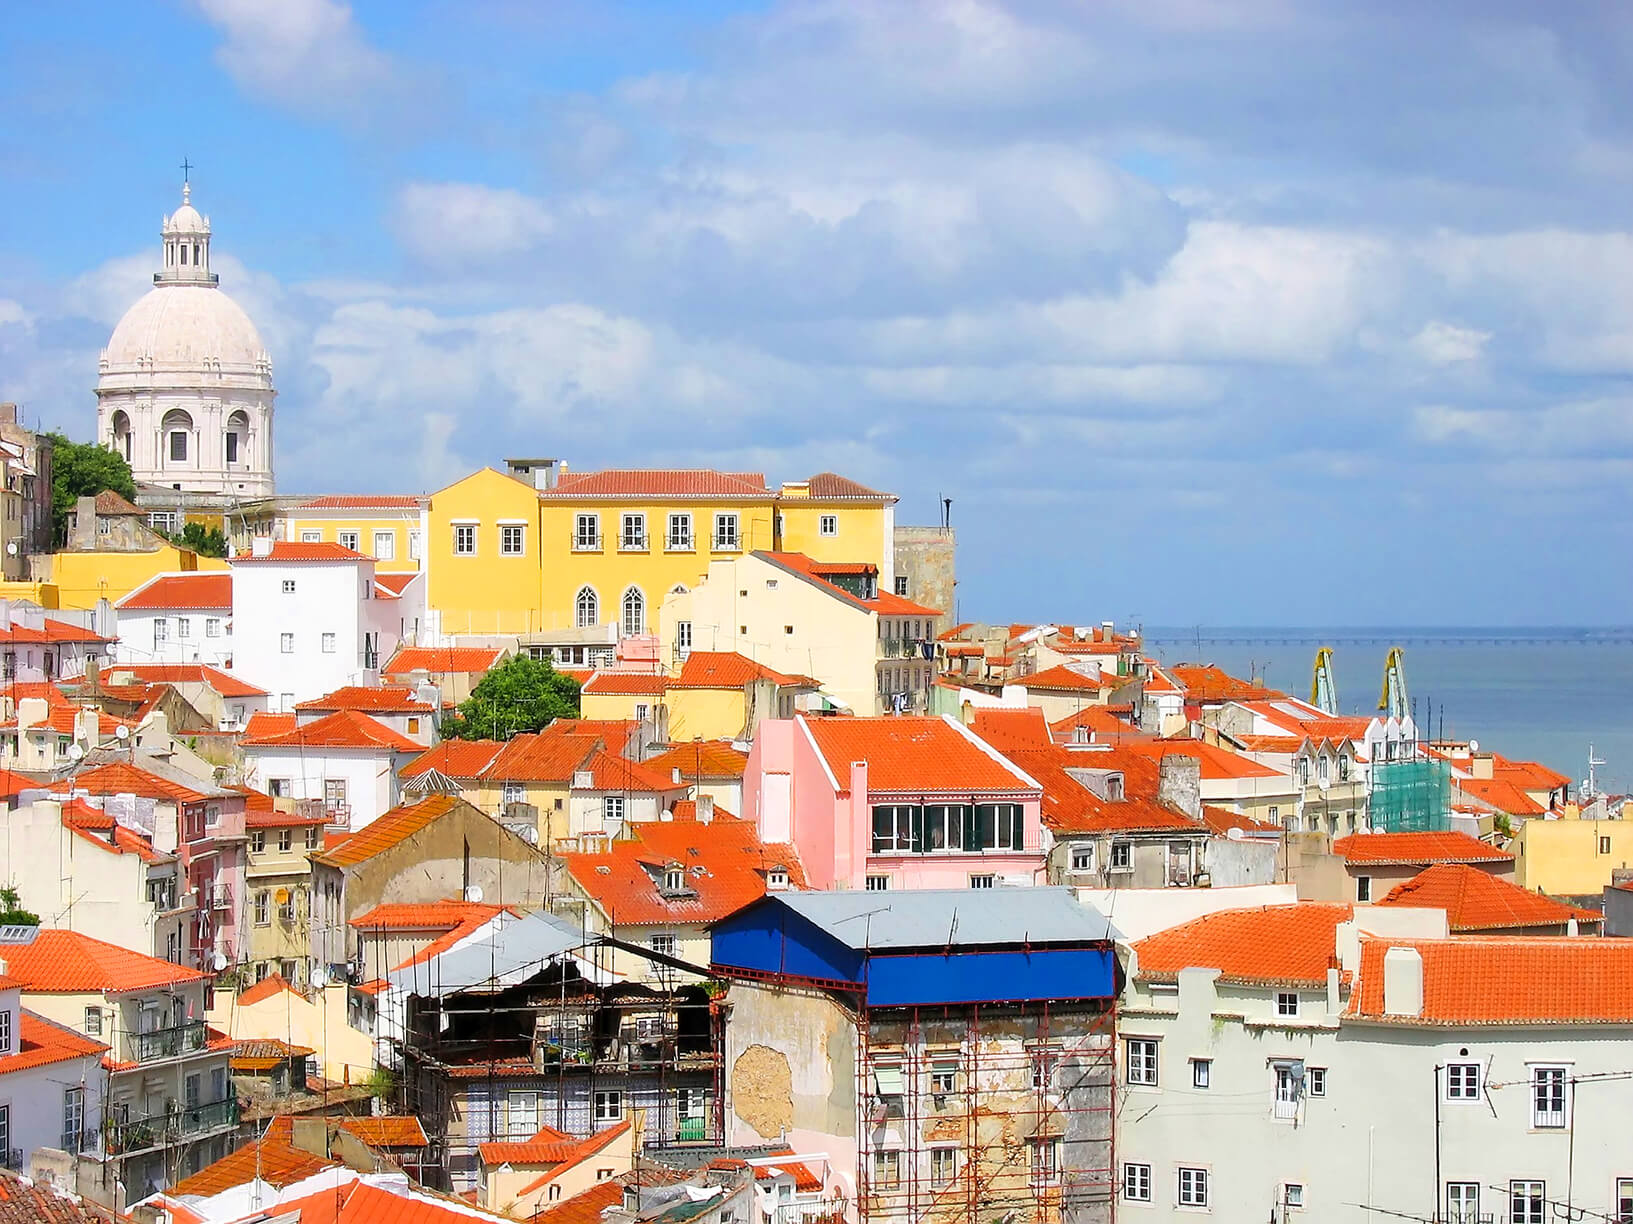 HOT!! San Francisco to Lisbon, Portugal for only $383 roundtrip